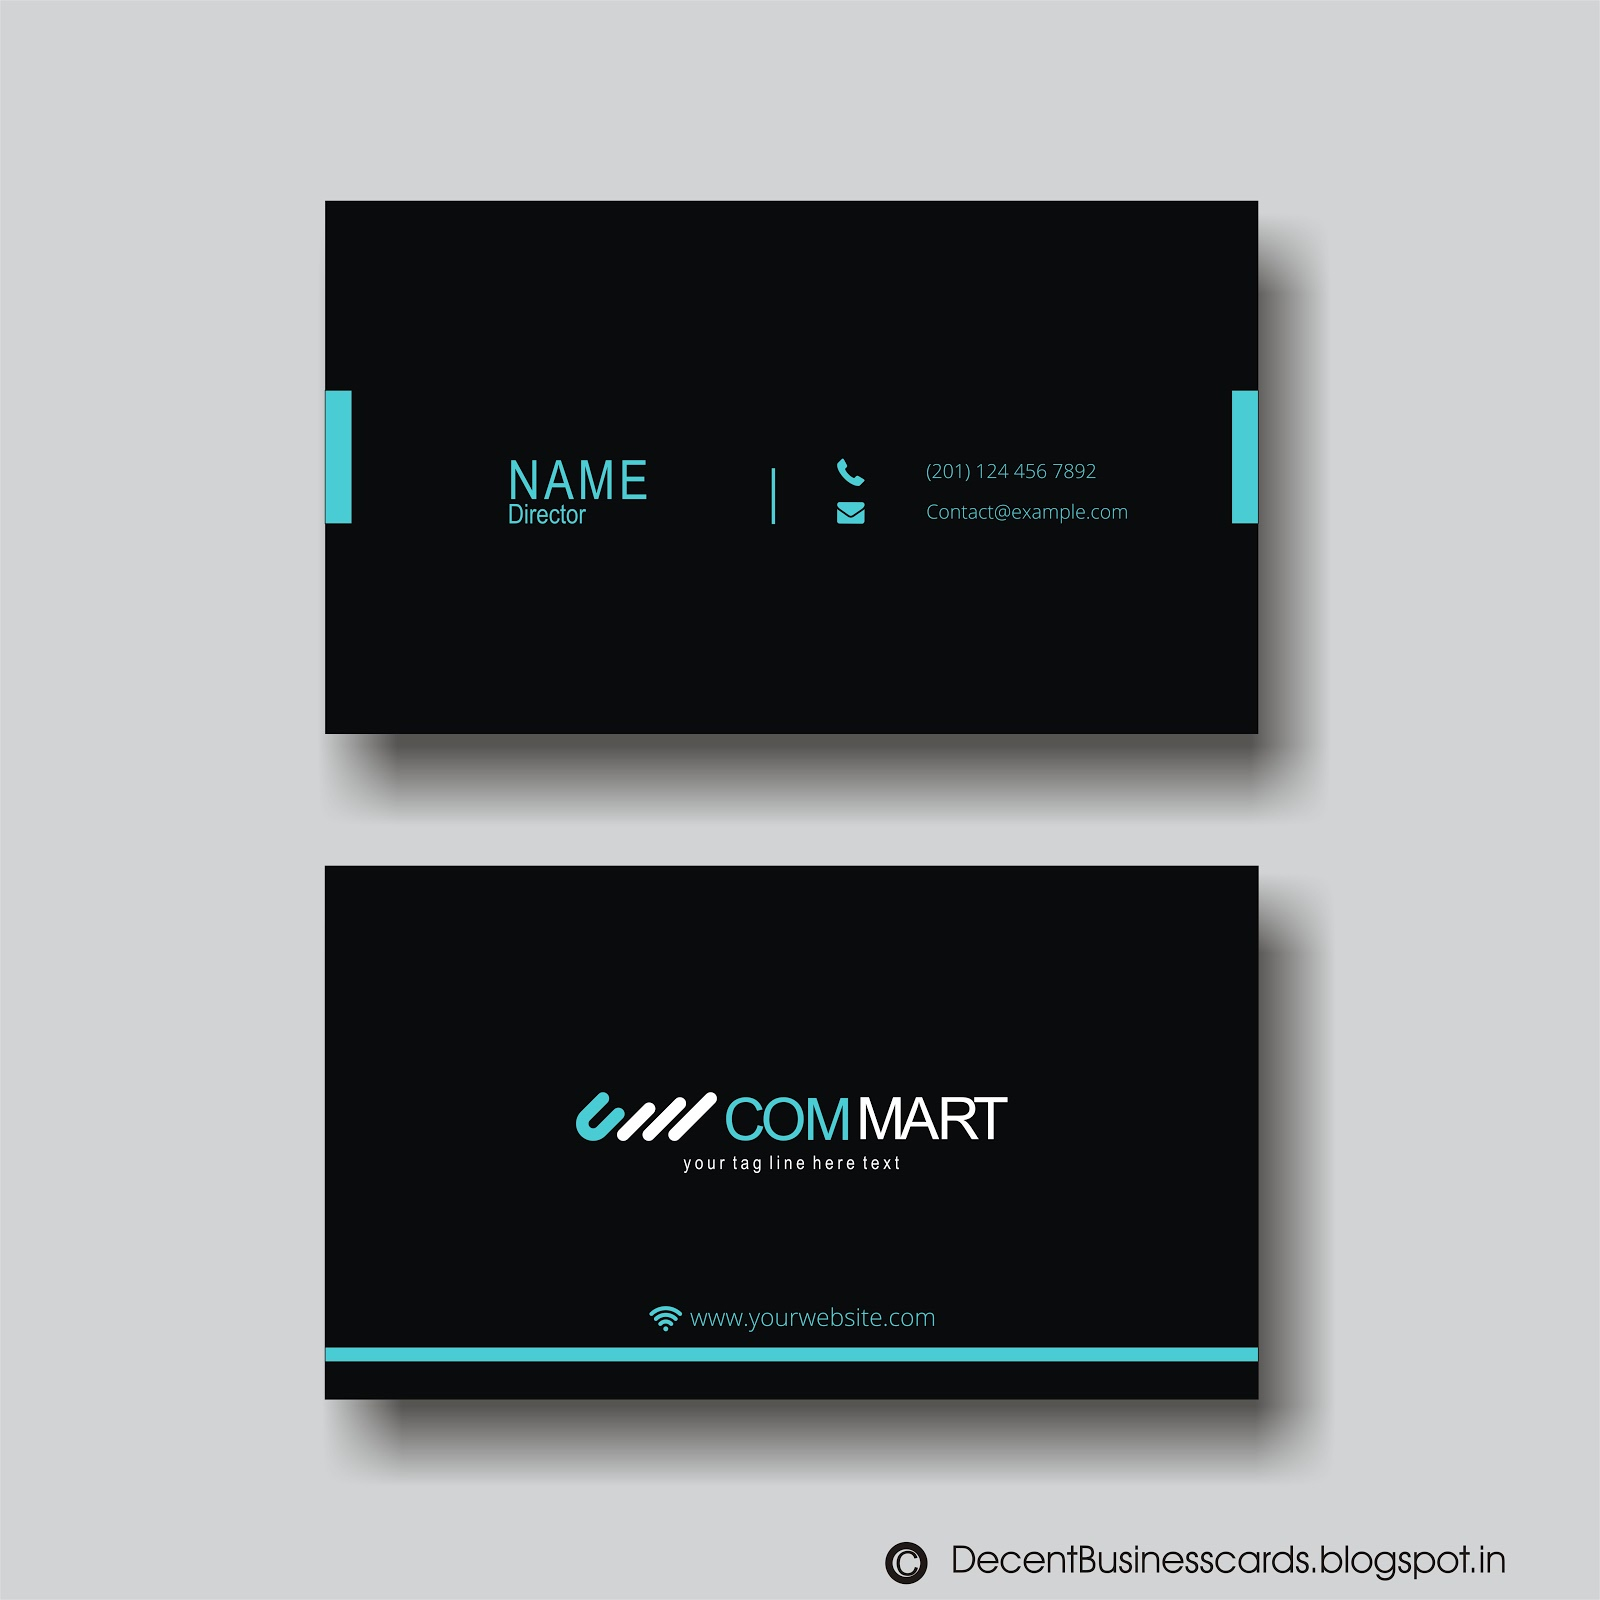 Decent Business Cards : Formal Business Cards